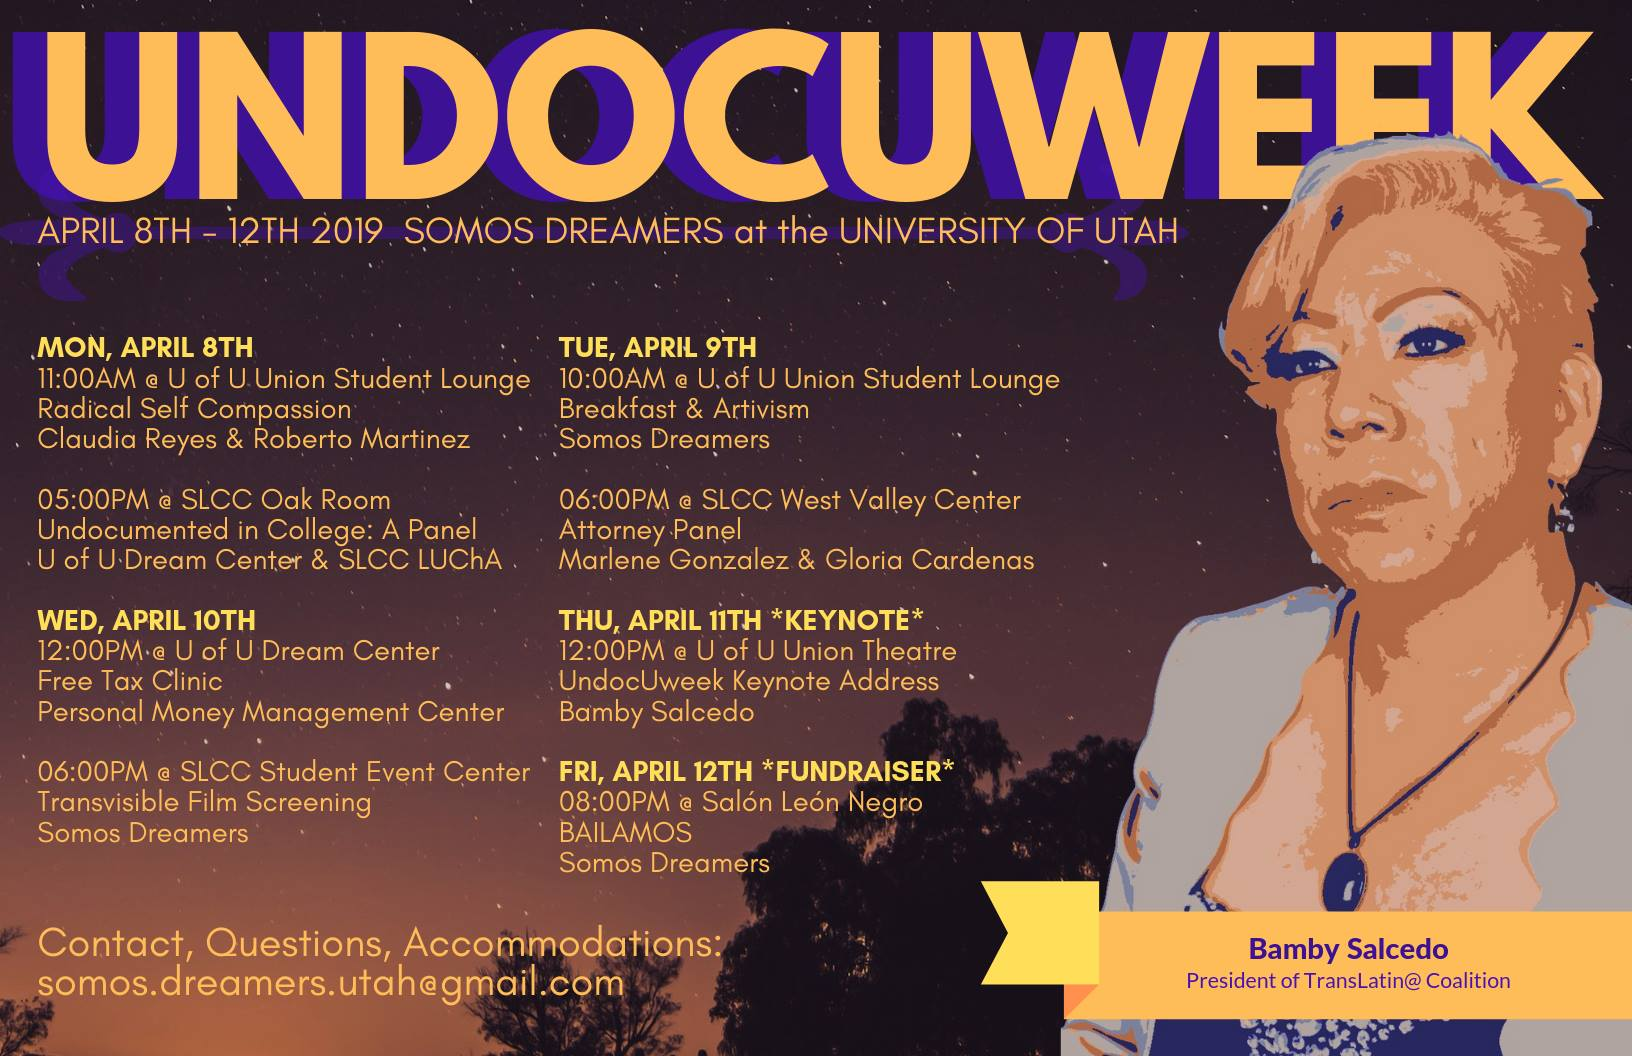 Undocuweek is April 8th through 12th with Somos Dreamers at the University of Utah